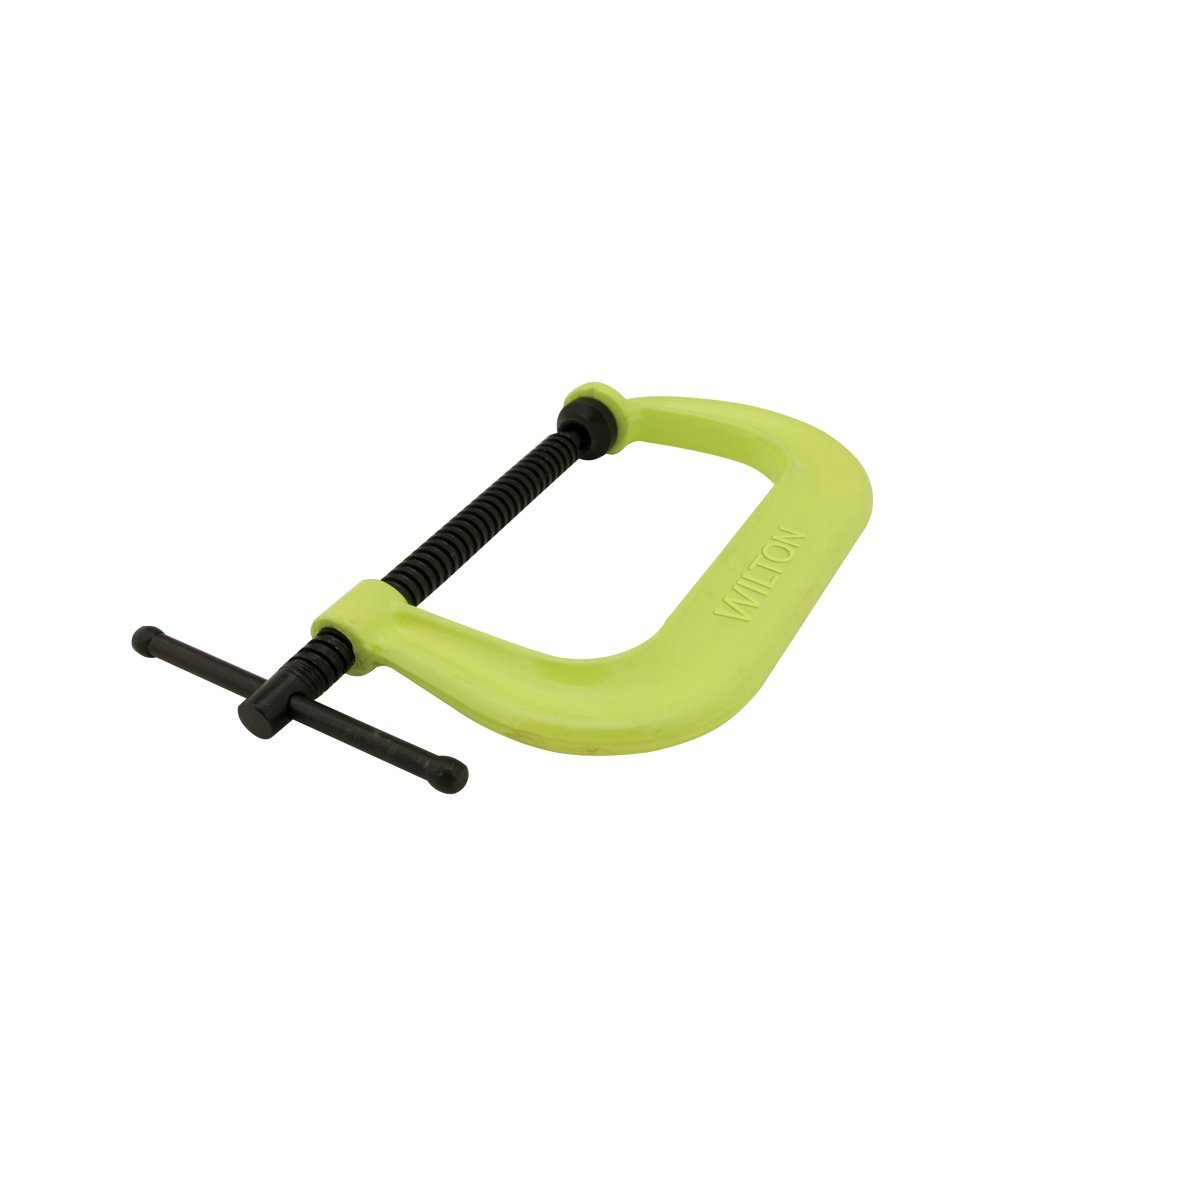 Wilton 14306 Drop Forged Hi Vis C-Clamp, 2-Inch-10-1/8-Inch Jaw Opening, 6-Inch Throat Depth